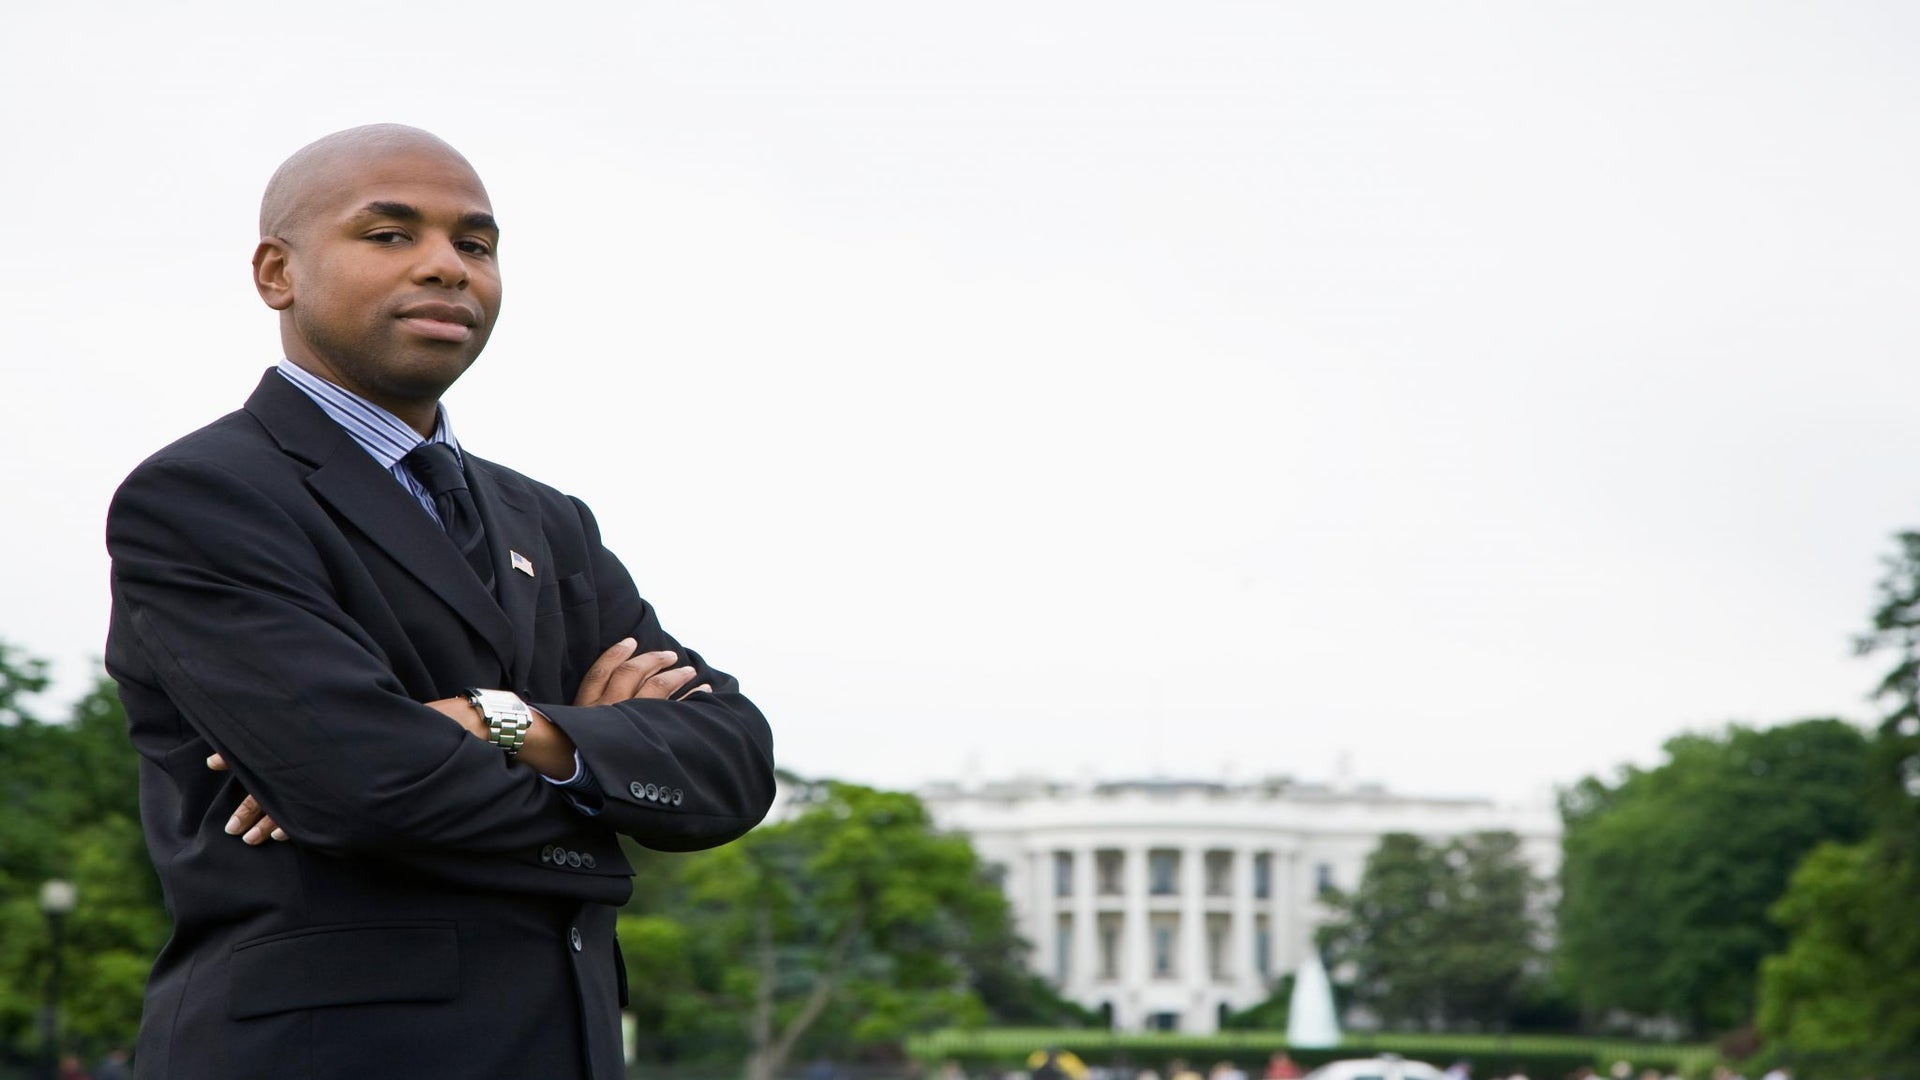 White House to Recognize HBCU Faculty with 'Champions of Change' Panel